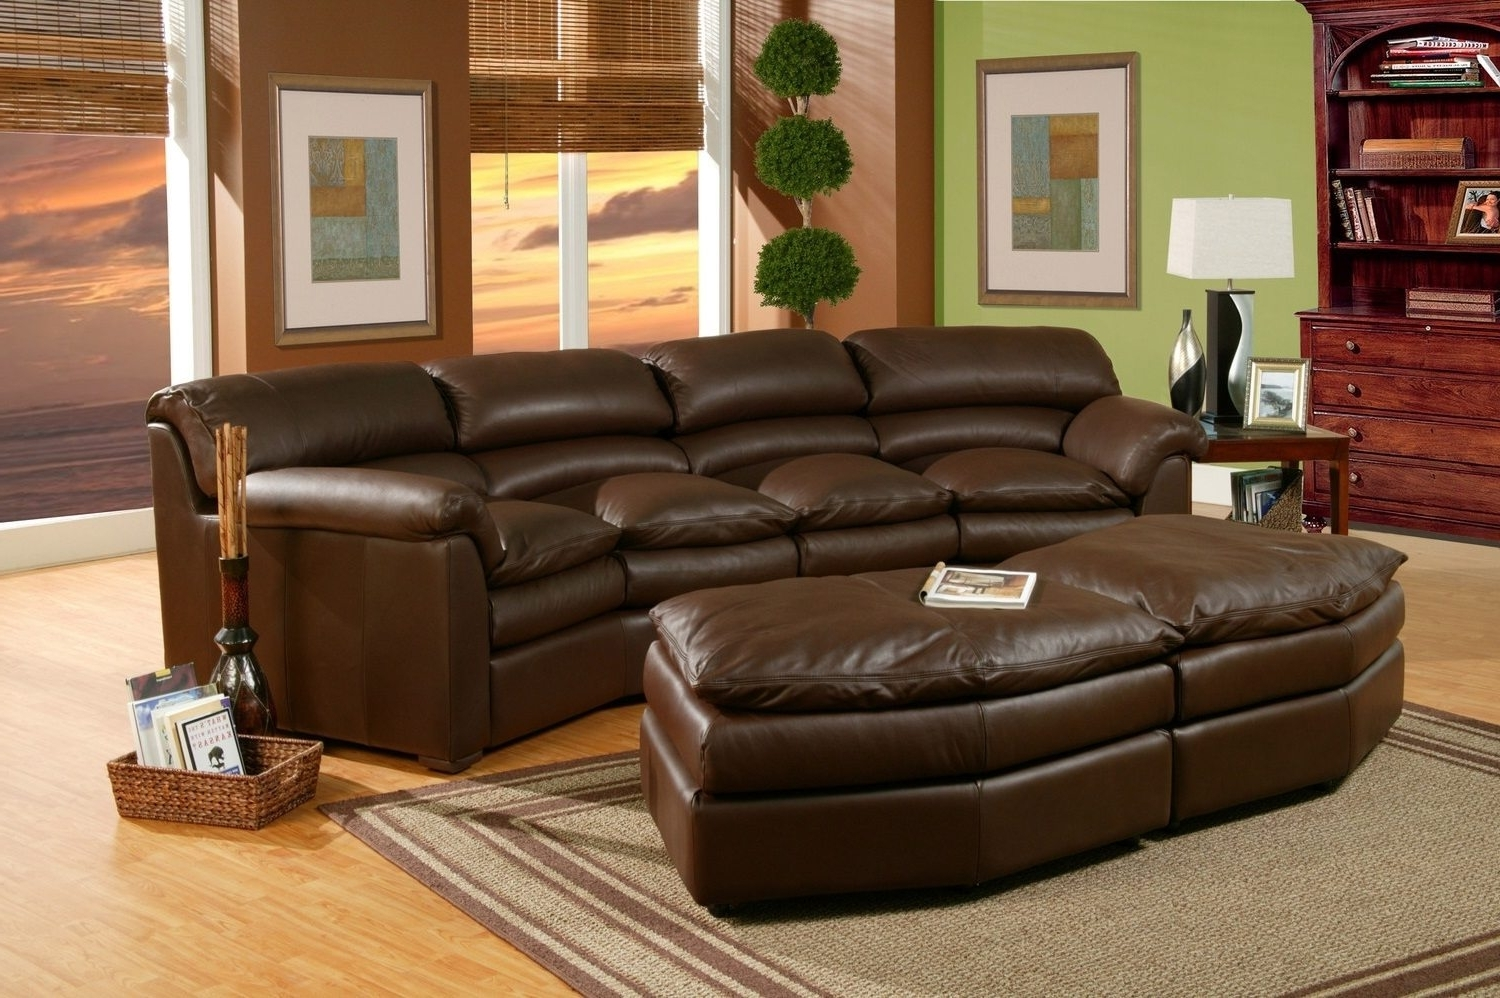 Widely Used Theatre Sectional Sofas Pertaining To Home Theater Sectional Sofa – Visionexchange (View 19 of 20)